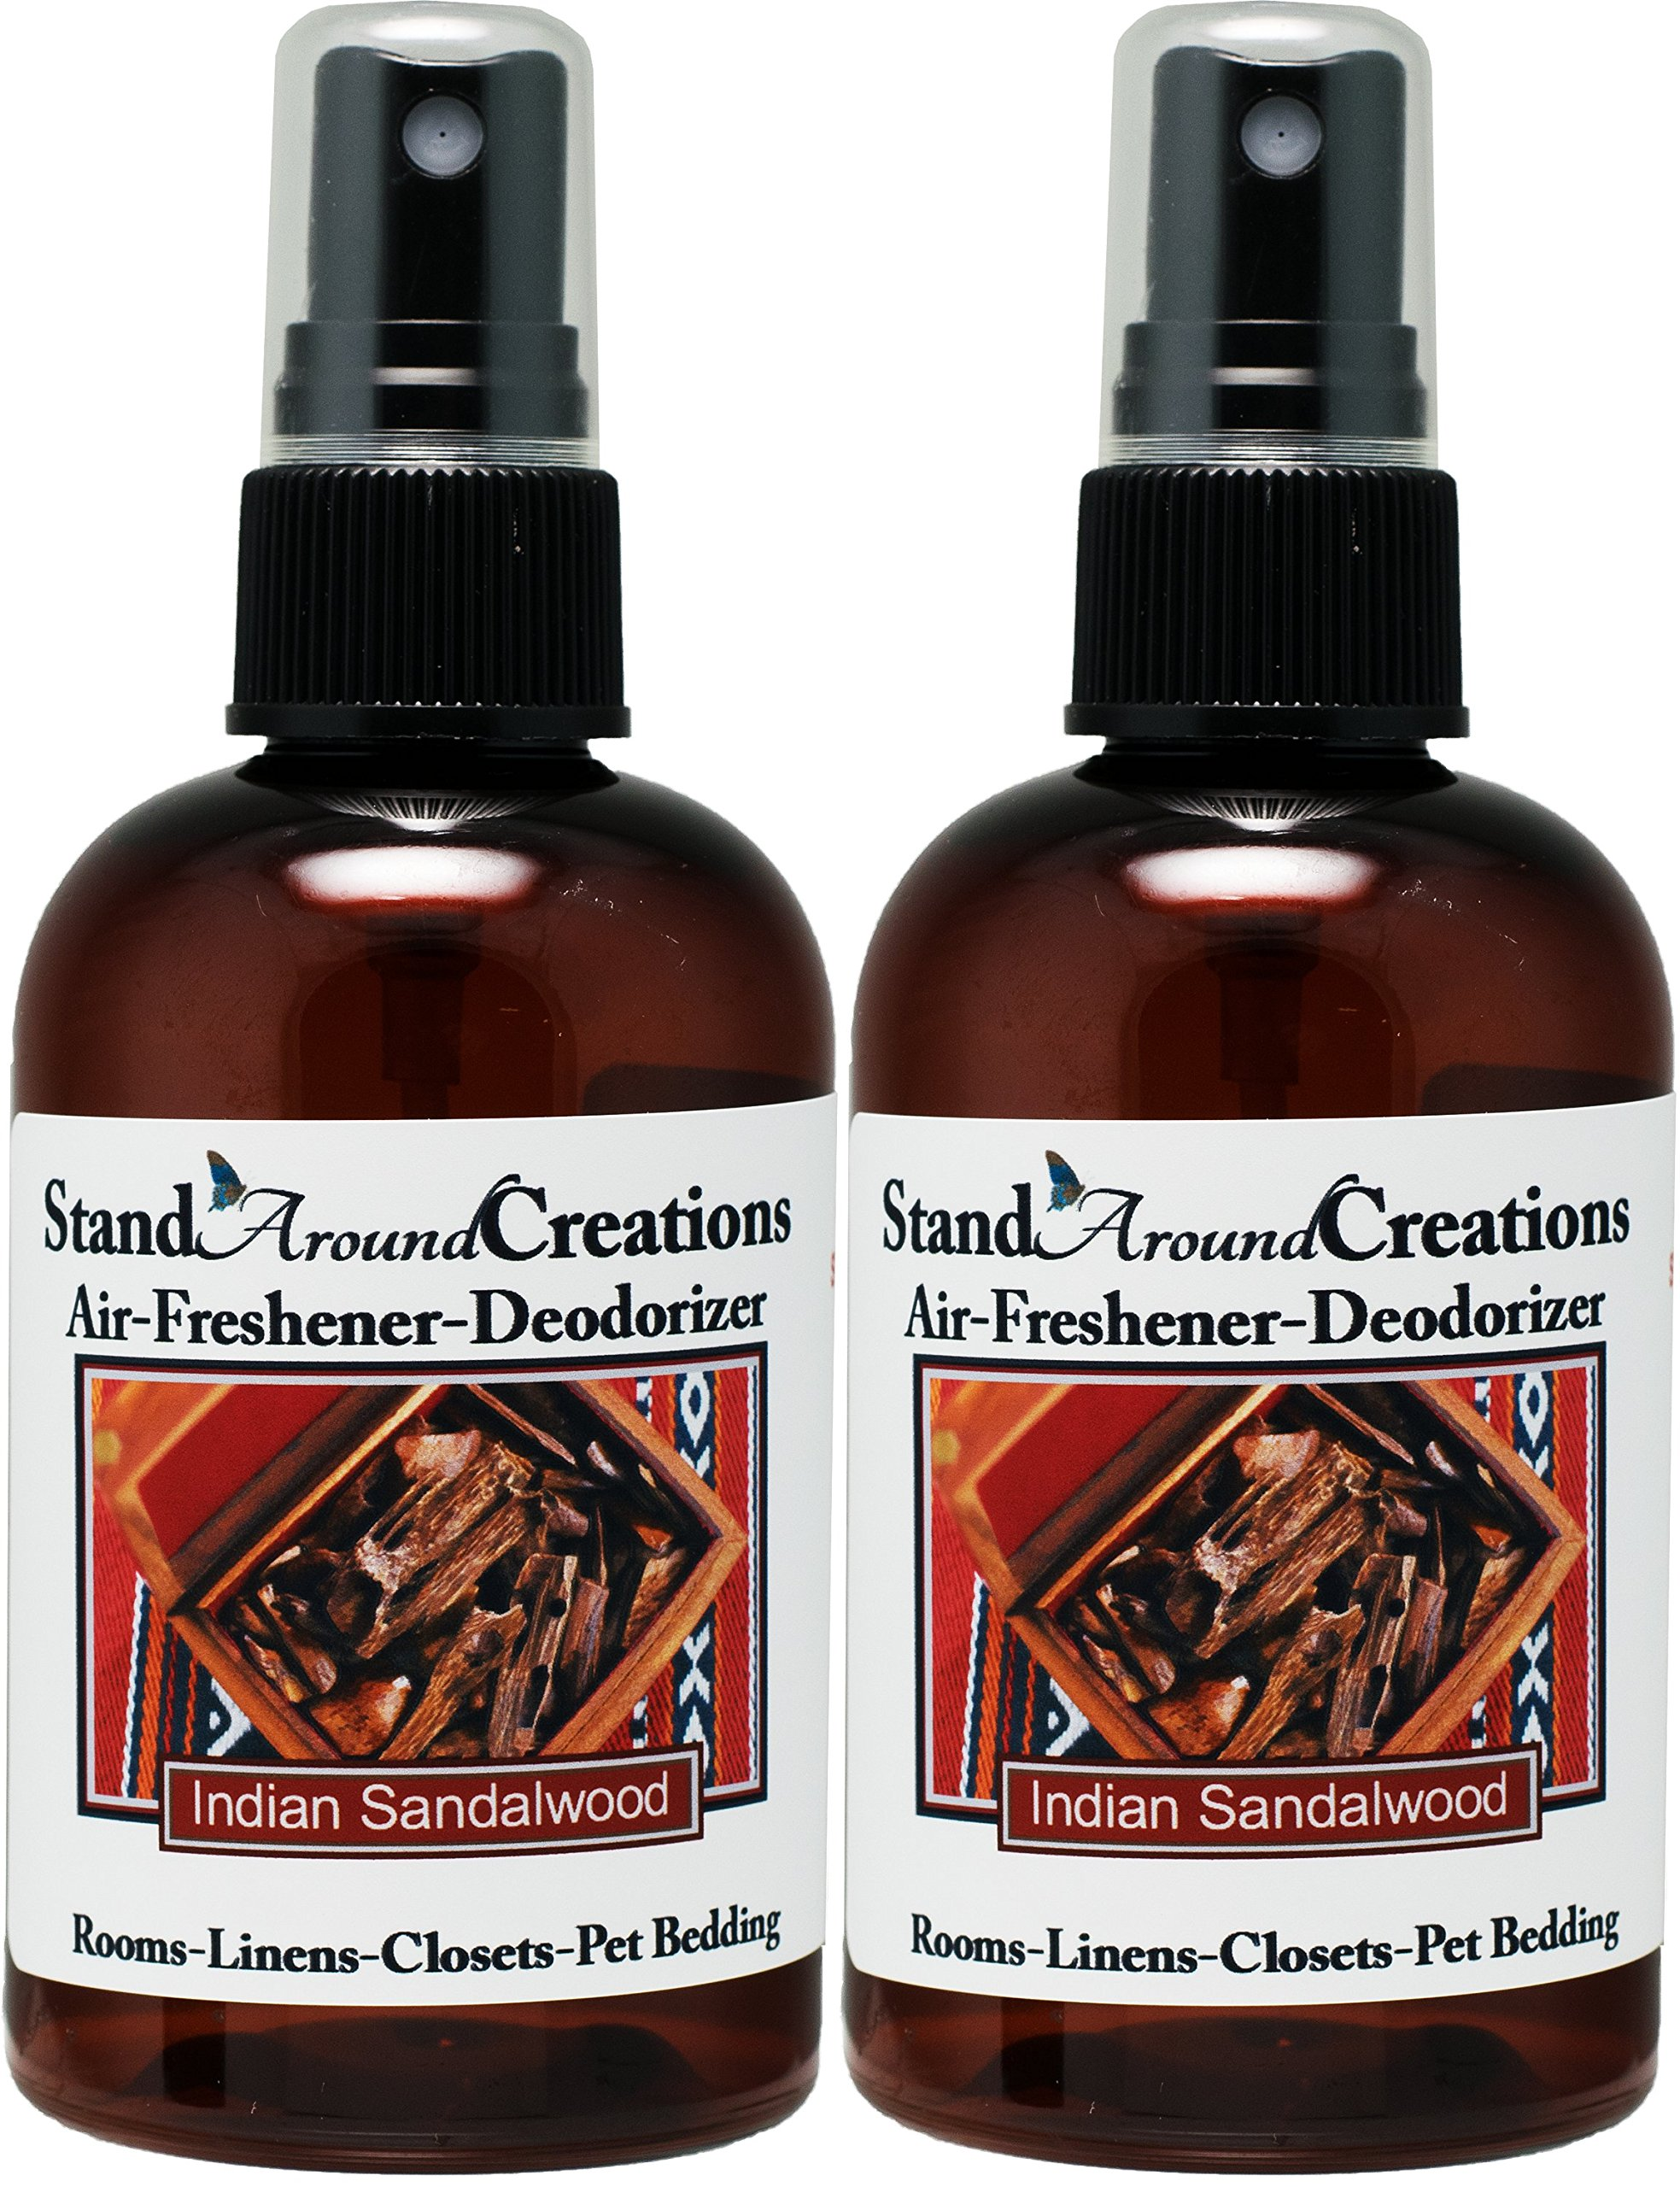 Set of 2 - Spray For Room/Linen/Room Deodorizer/Air Freshener - 4 fl oz - Scent - Indian Sandalwood: A warm, sweet, rich woodsy fragrance. by Stand Around Creations (Image #1)